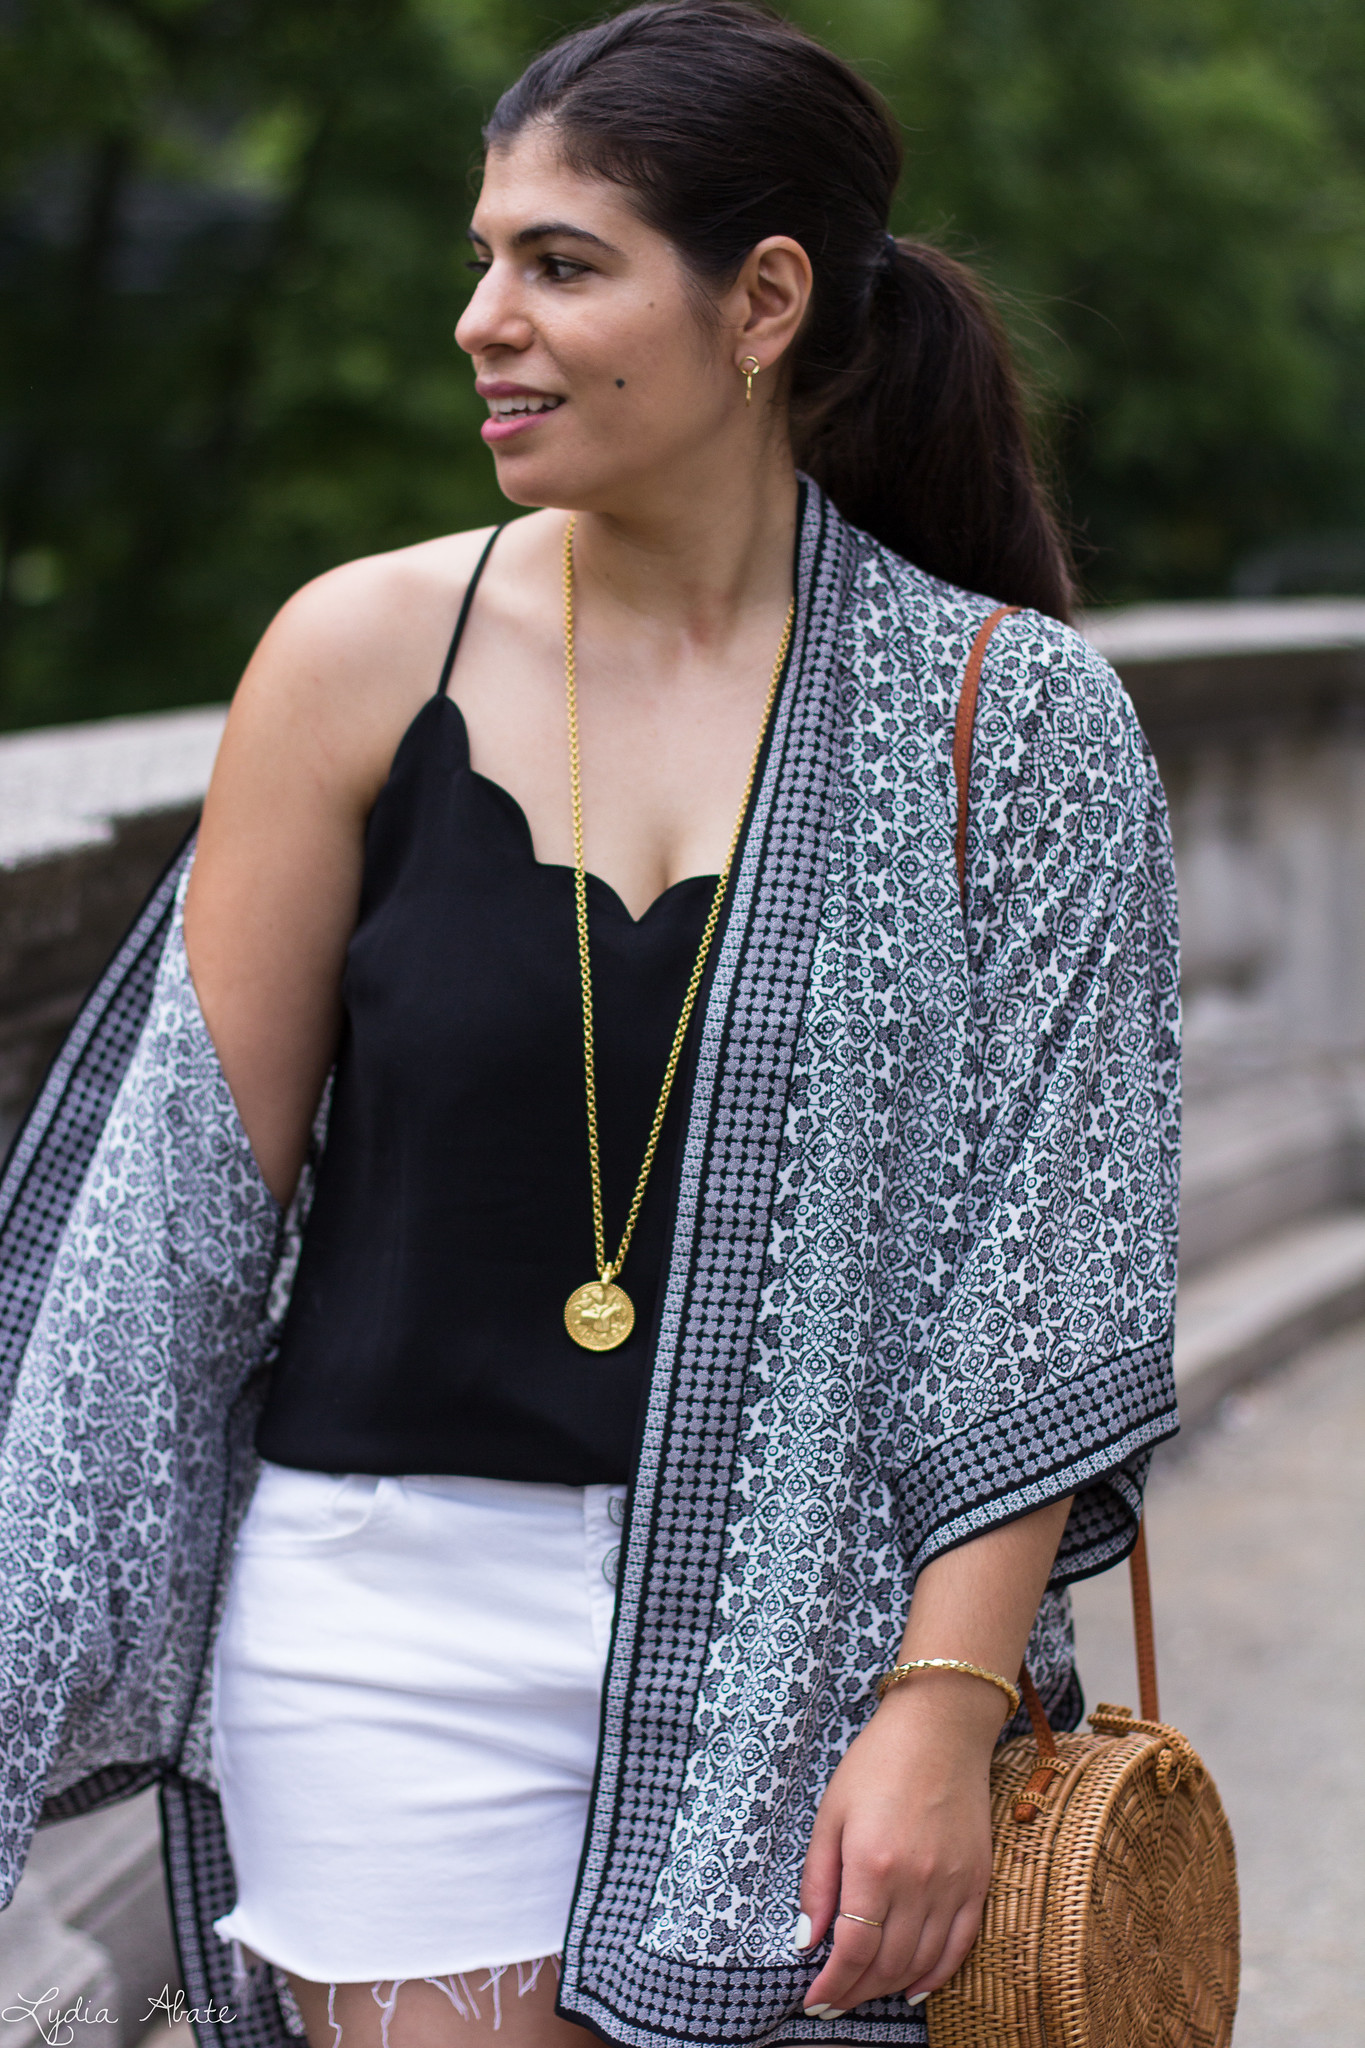 Black and White Kimono, Denim Cut-off Shorts, Round Straw Bag-8.jpg